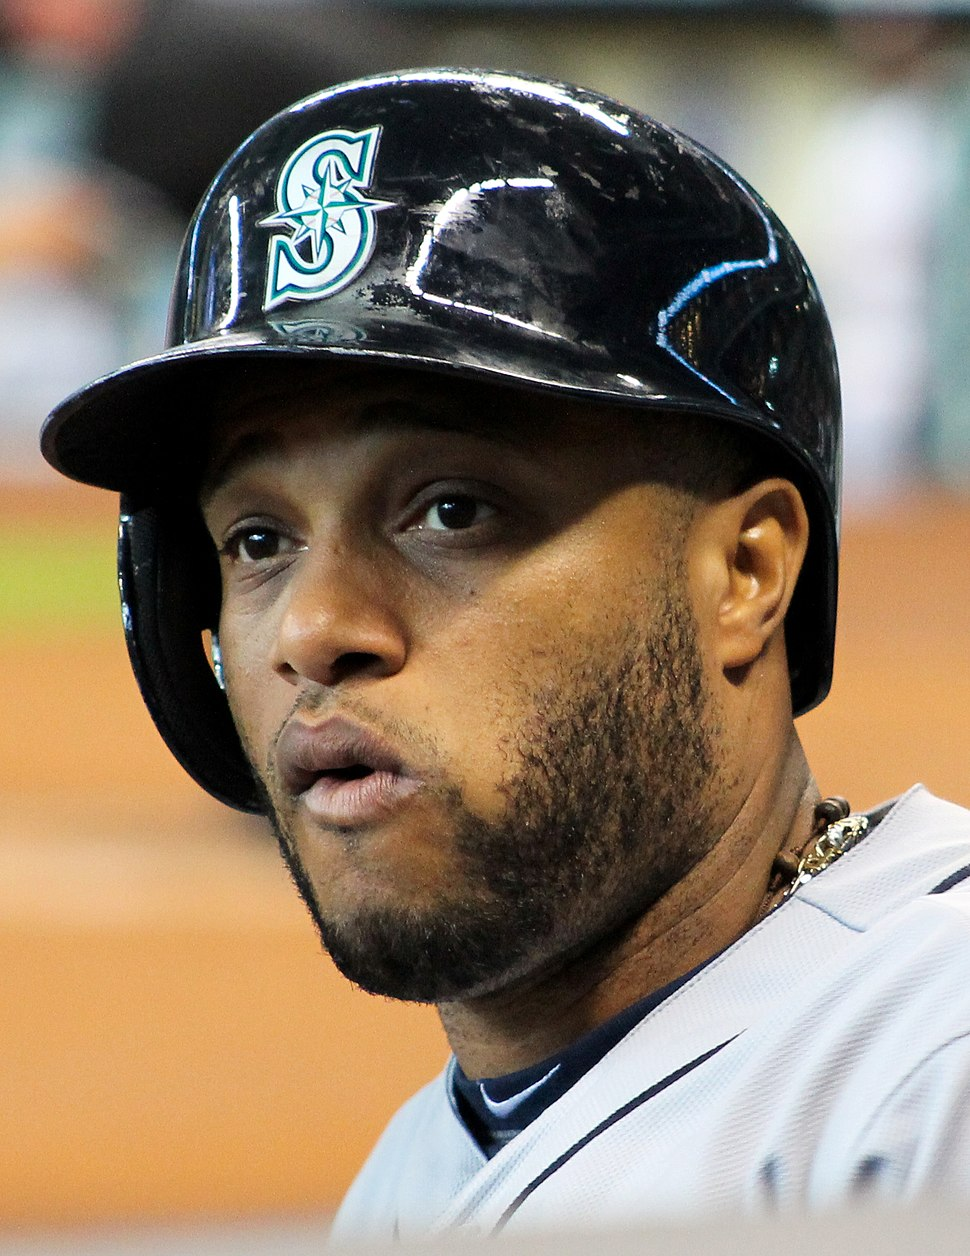 Robinson Canó with Mariners in Houston on July 2, 2014